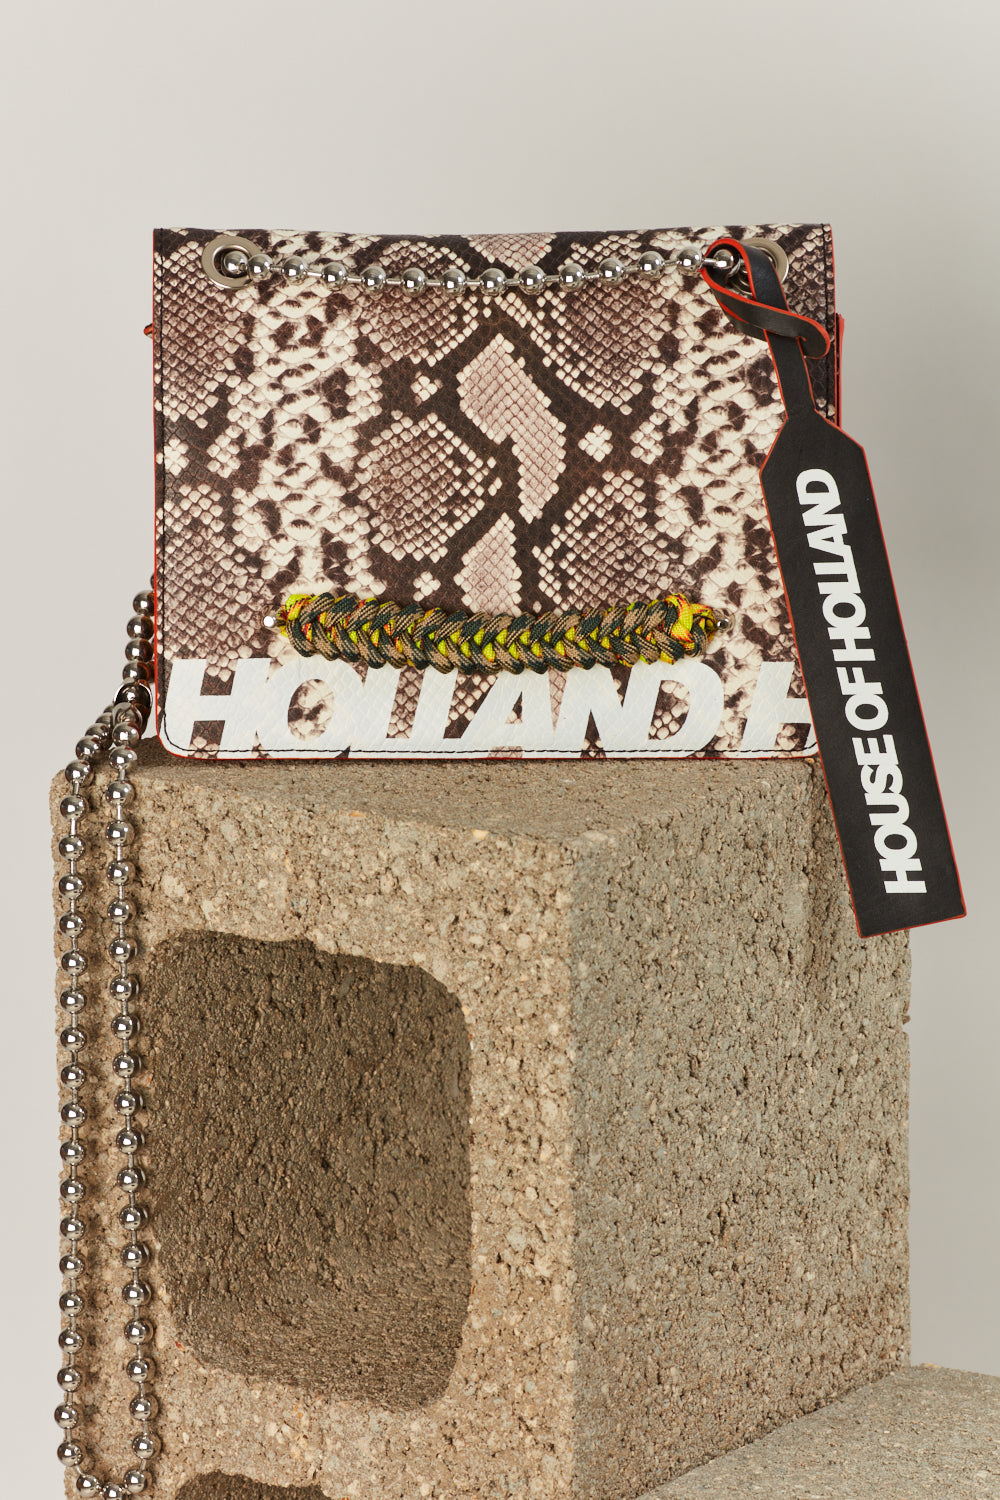 Large 'Margot' Shoulder Bag (Mustard Snake Skin) by House of Holland